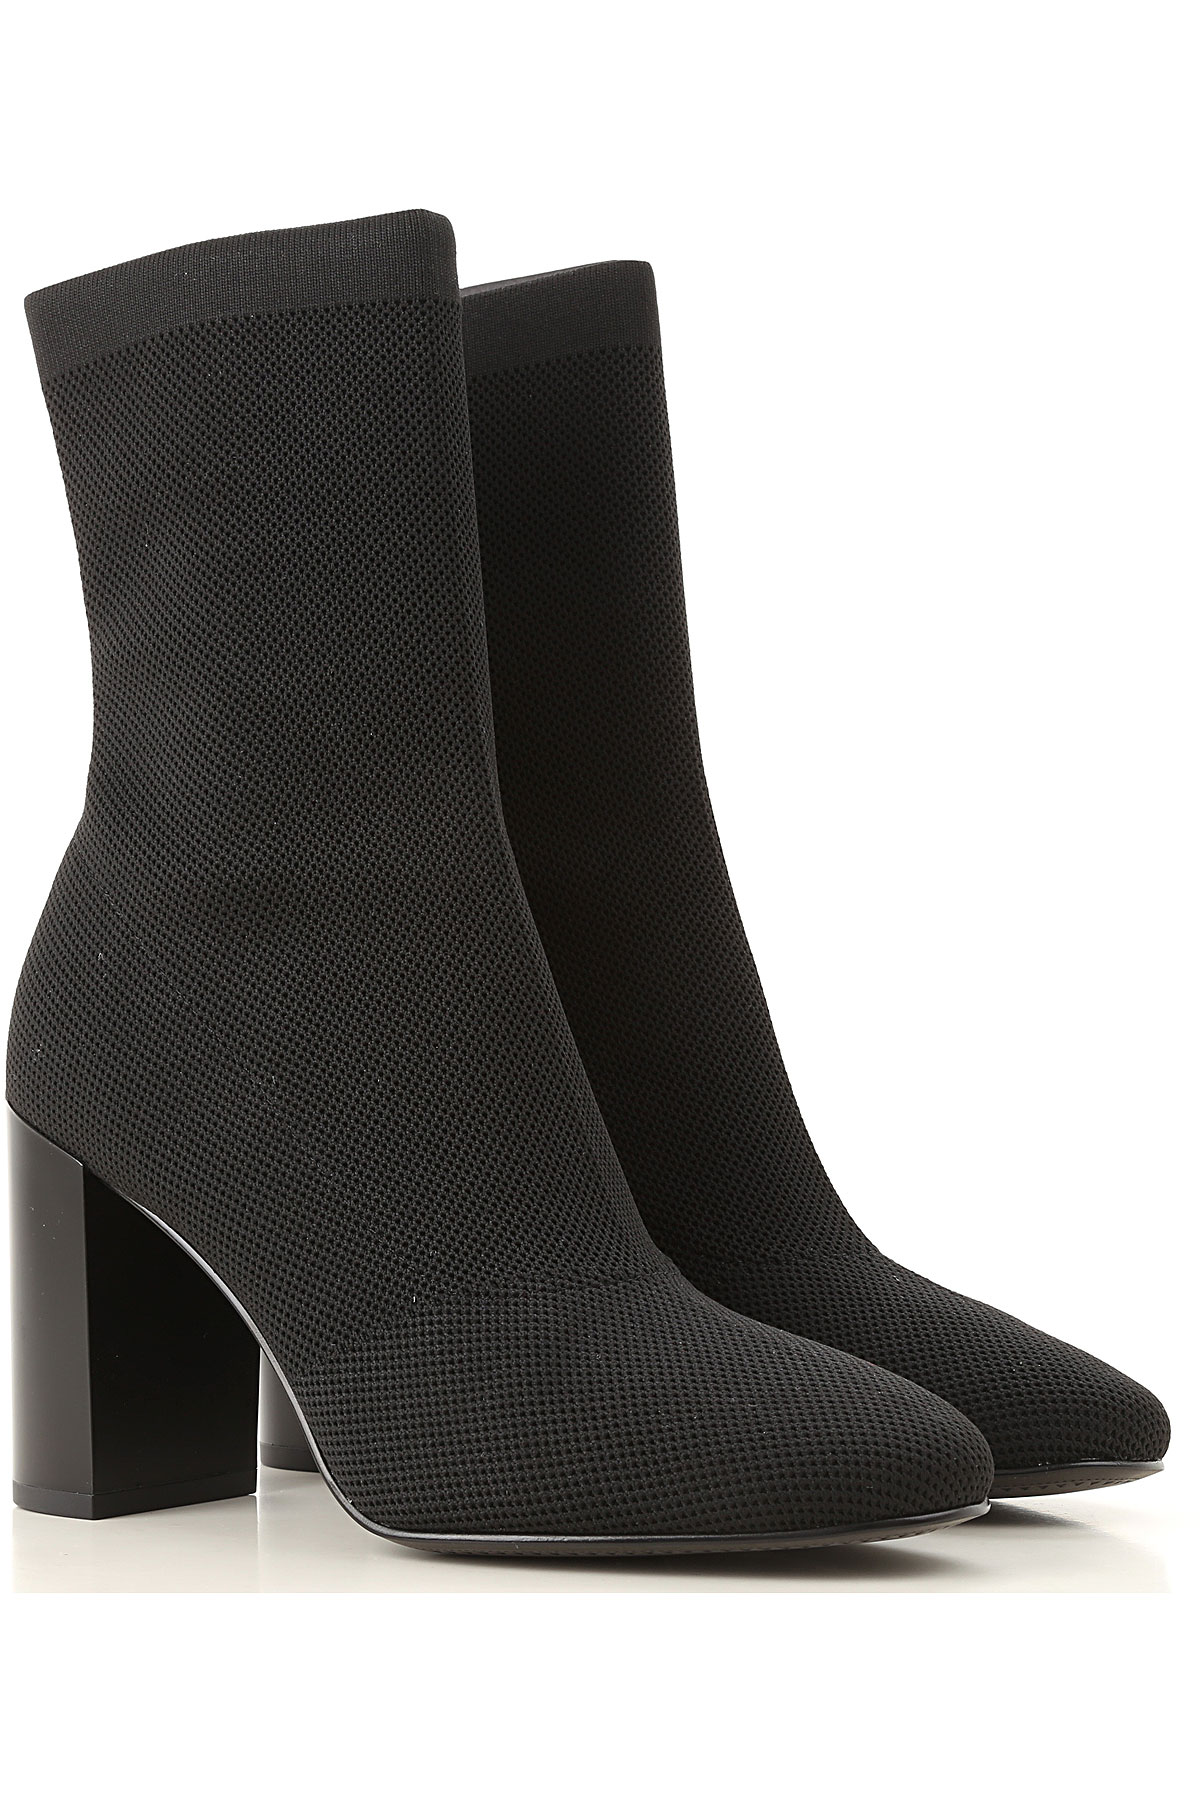 Image of What For Boots for Women, Booties, Black, Fabric, 2017, 10 6 7 8 9